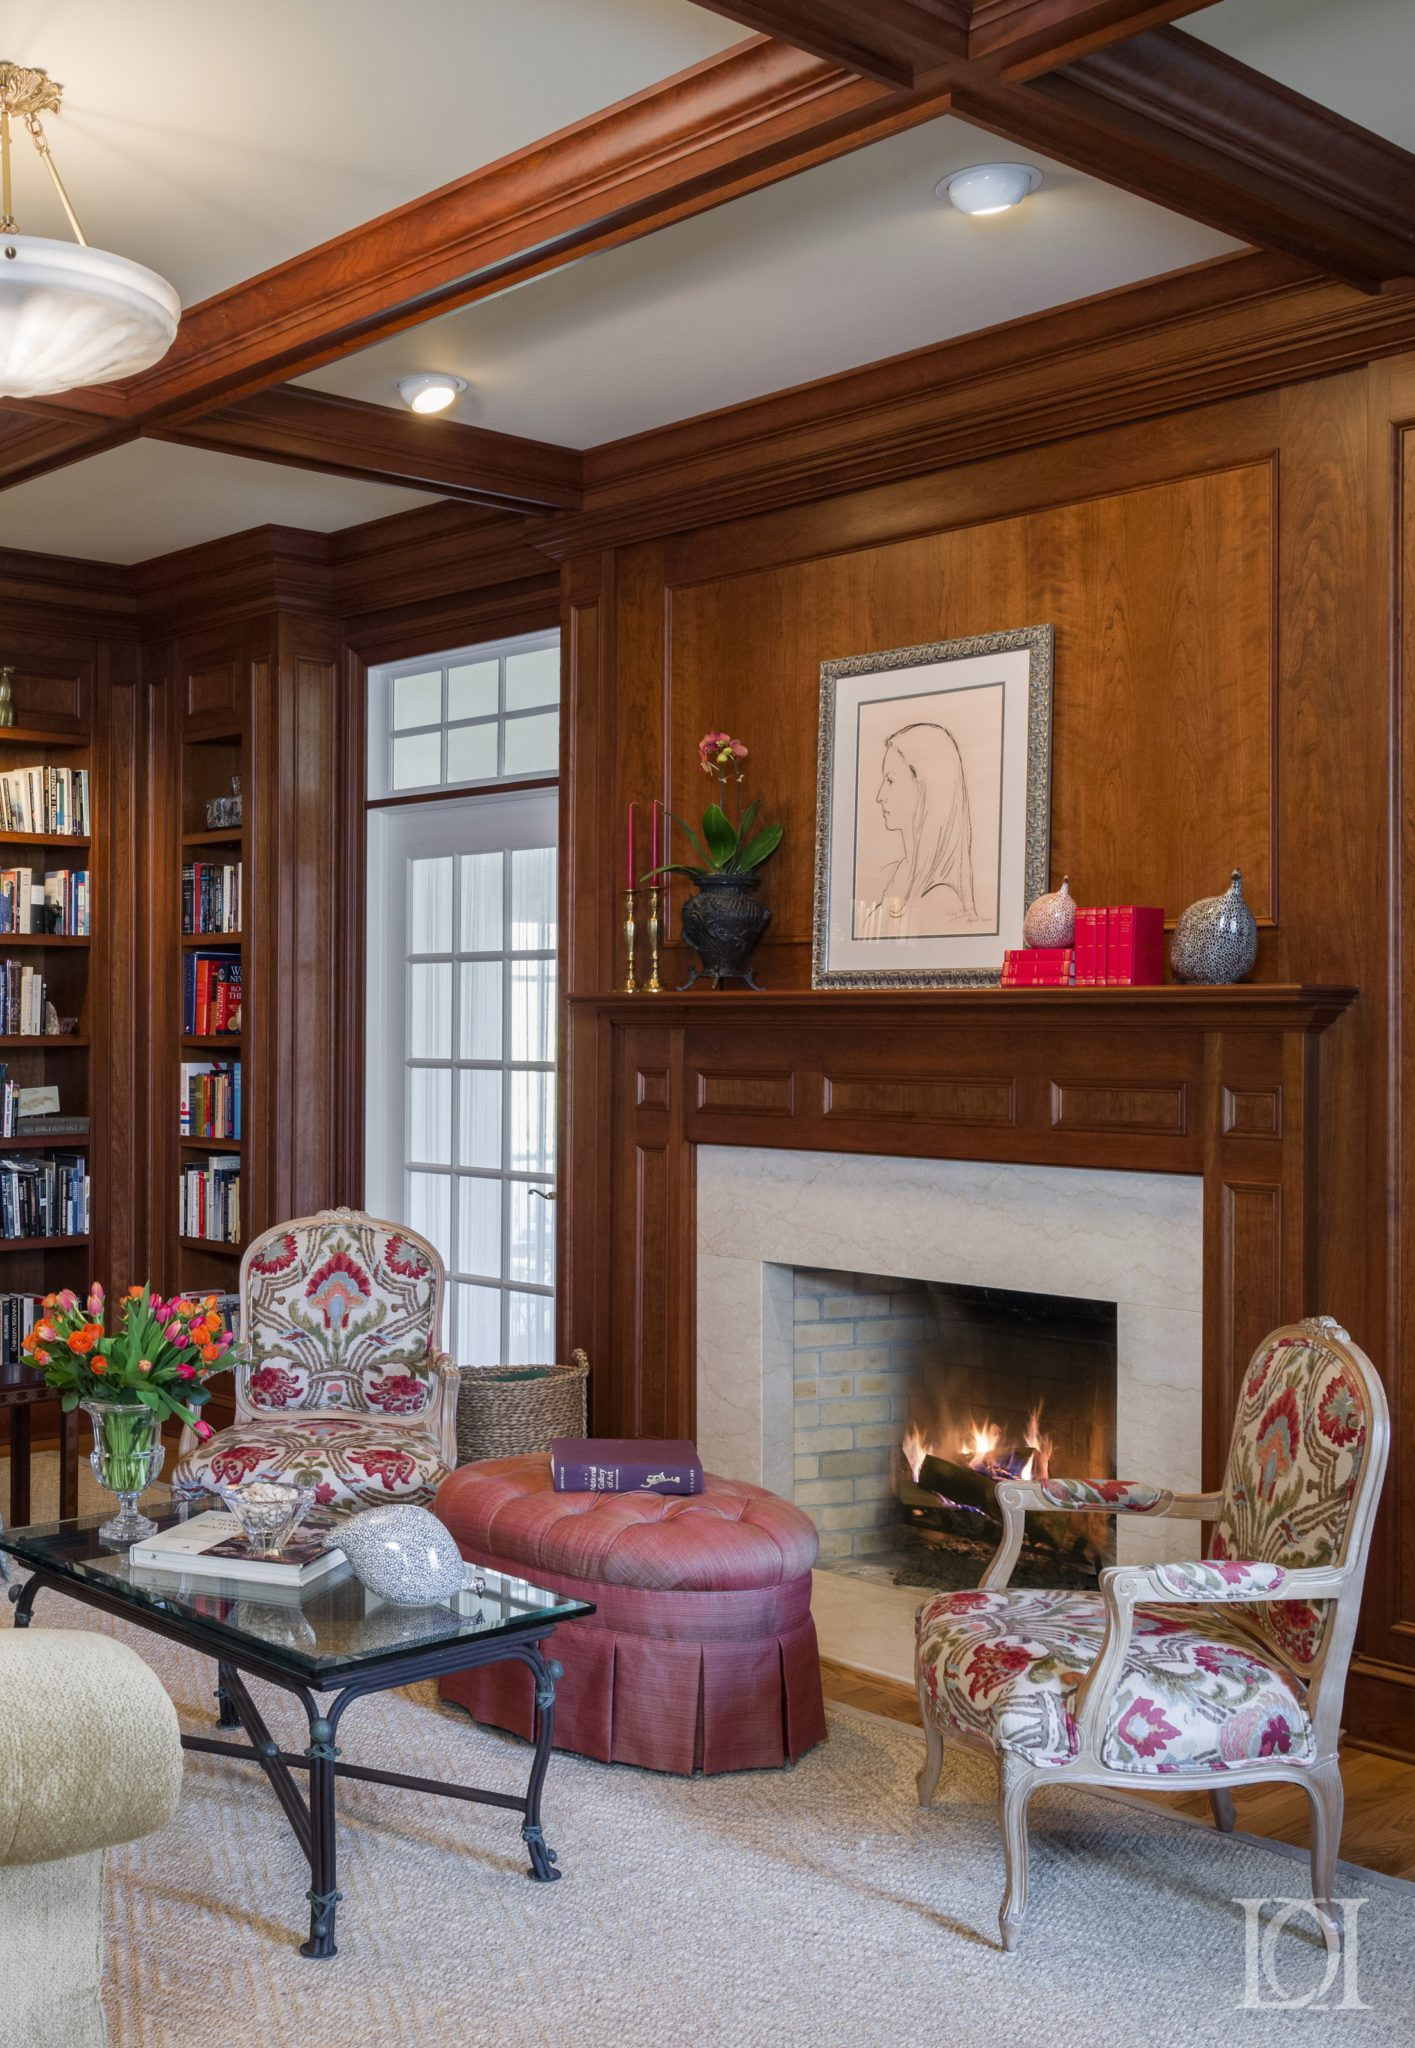 Living room re imagined into a full panel library with coffer ceiling and panels by Deborah Leamann Interior Design